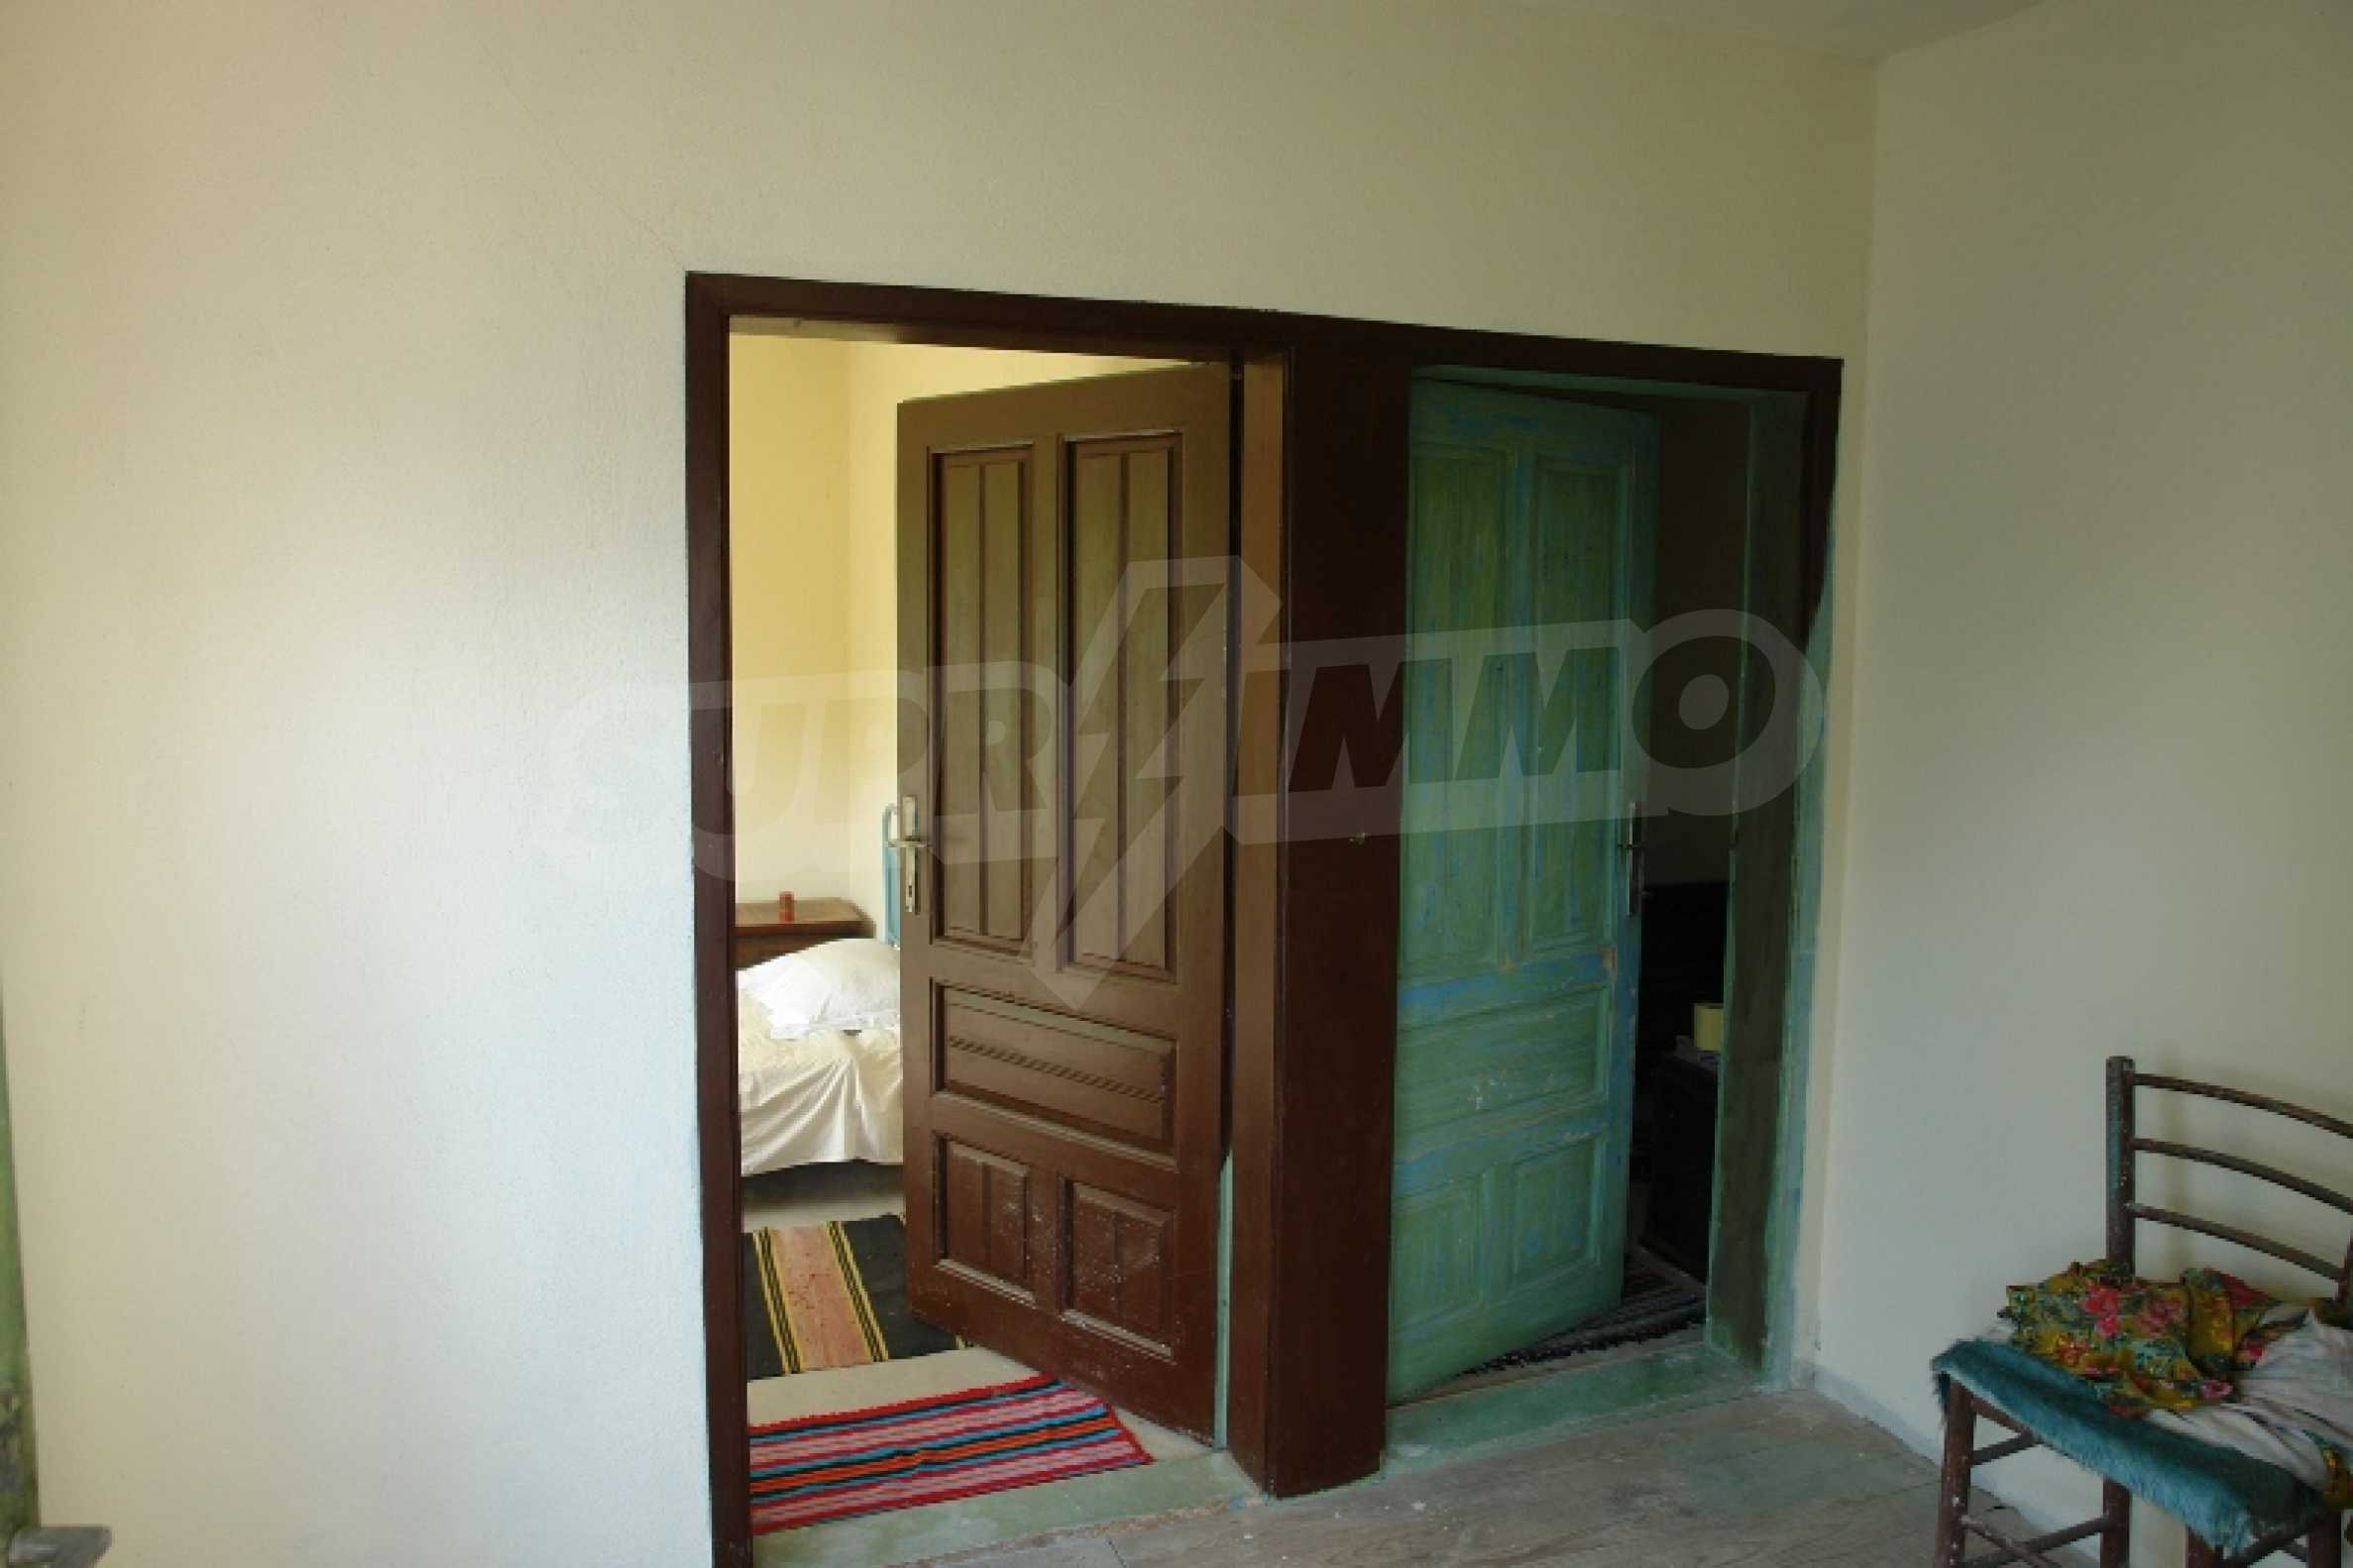 One-storey 2-bedrooom house in Sadina village, Ruse district 12